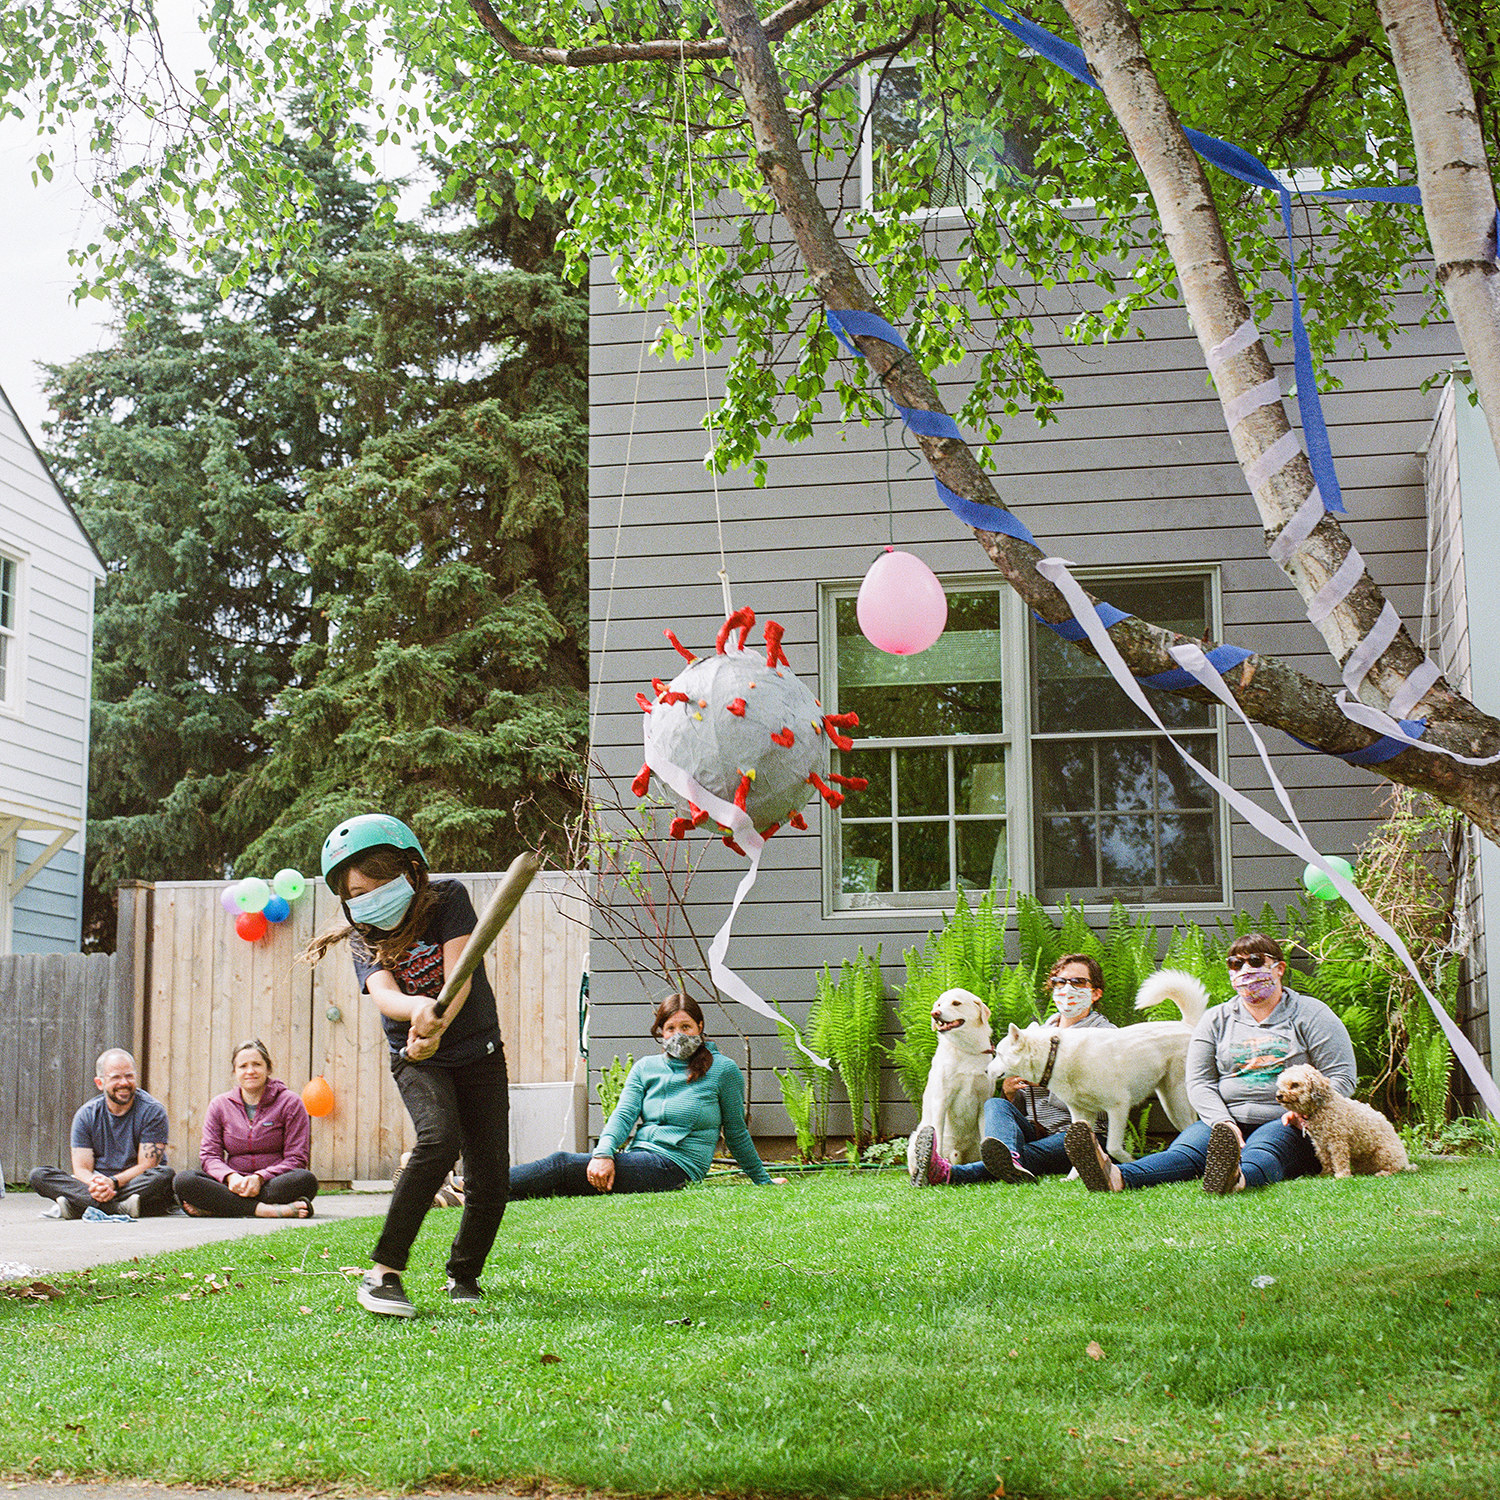 A group of adults watch a kid hit a piñata resembling a coronavirus particle with a bat in a neighborhood front yard